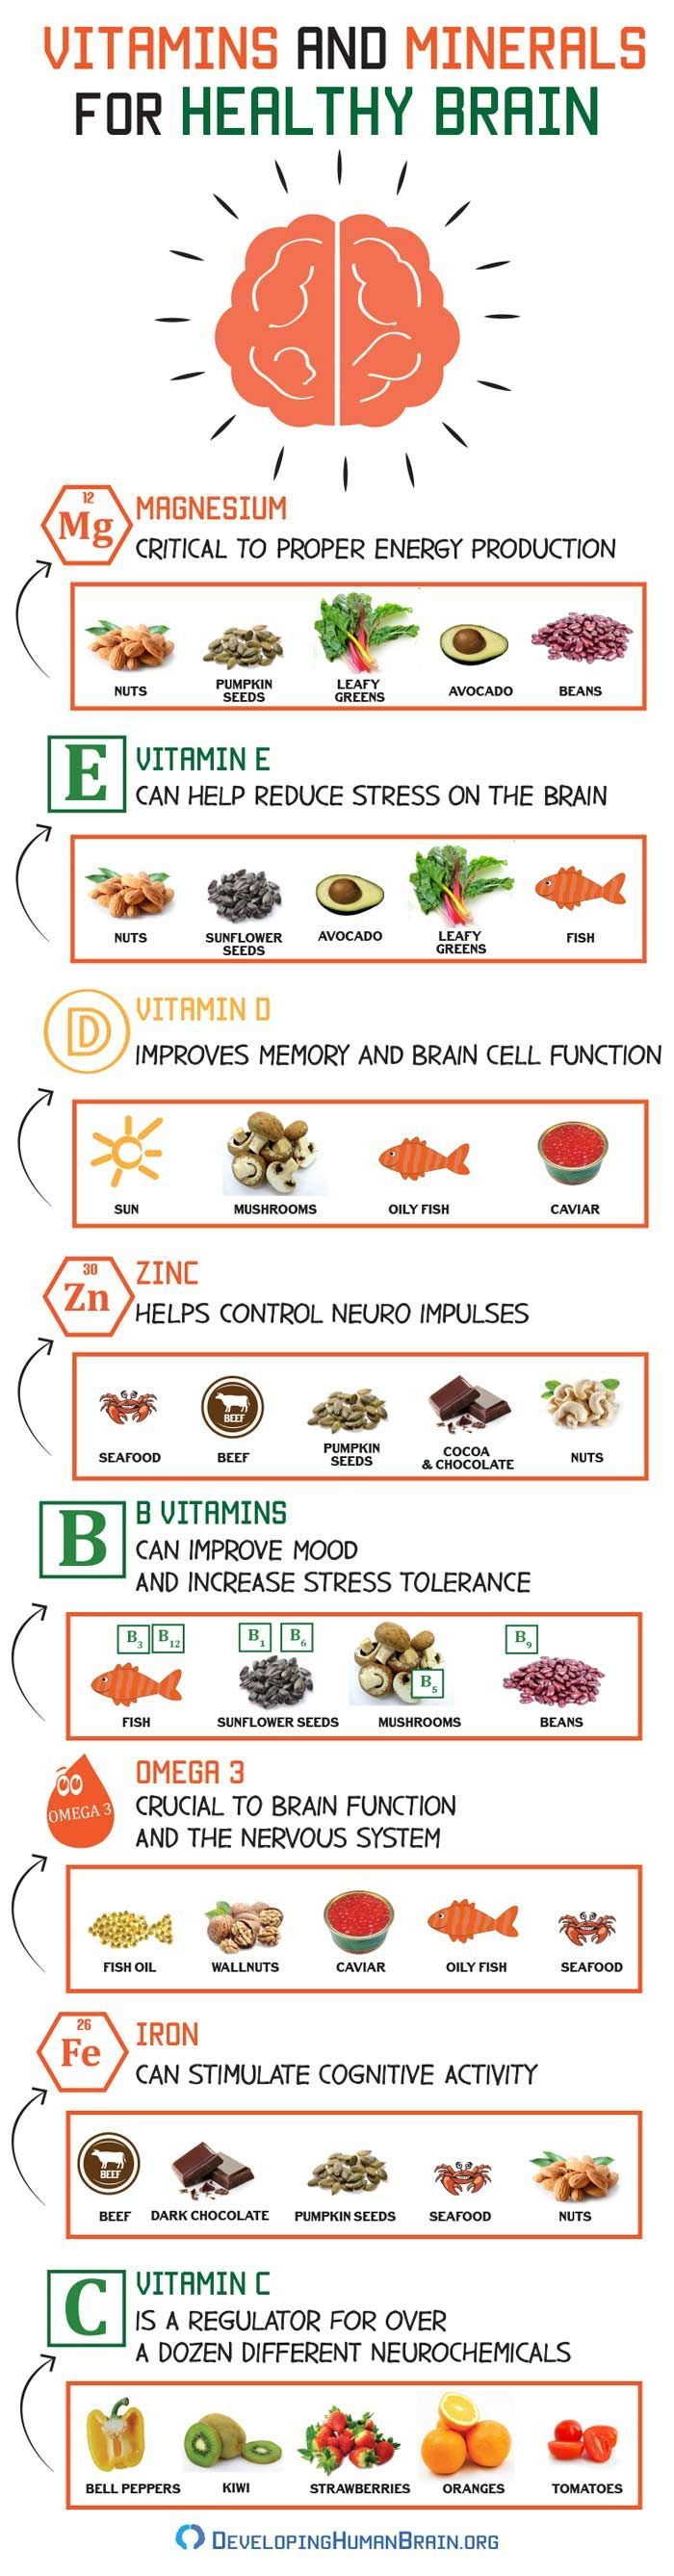 Suffering from Brain Fog? Vitamins and Minerals for healthy brain : https://www.developinghumanbrain.org/brain-fog/